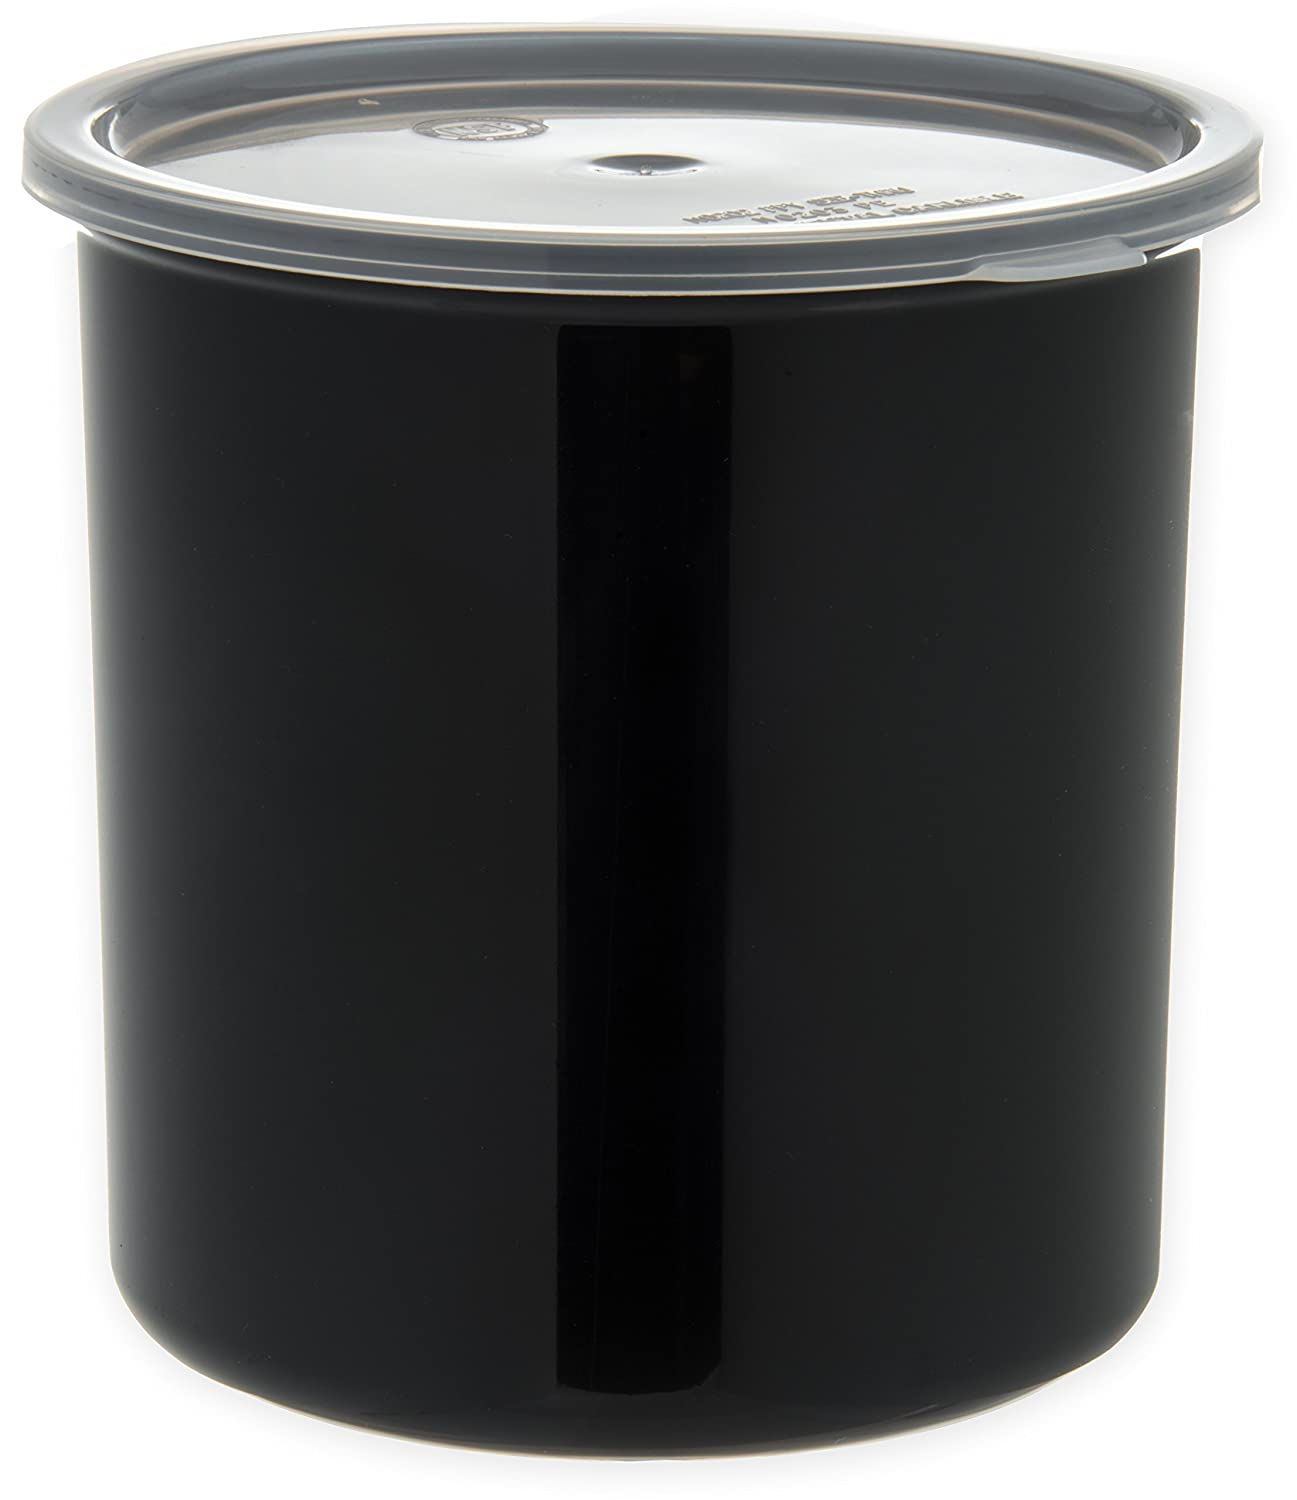 Carlisle 030203 Solid Color Commercial Round Storage Container with Lid, 2.7 Quart Capacity, Black